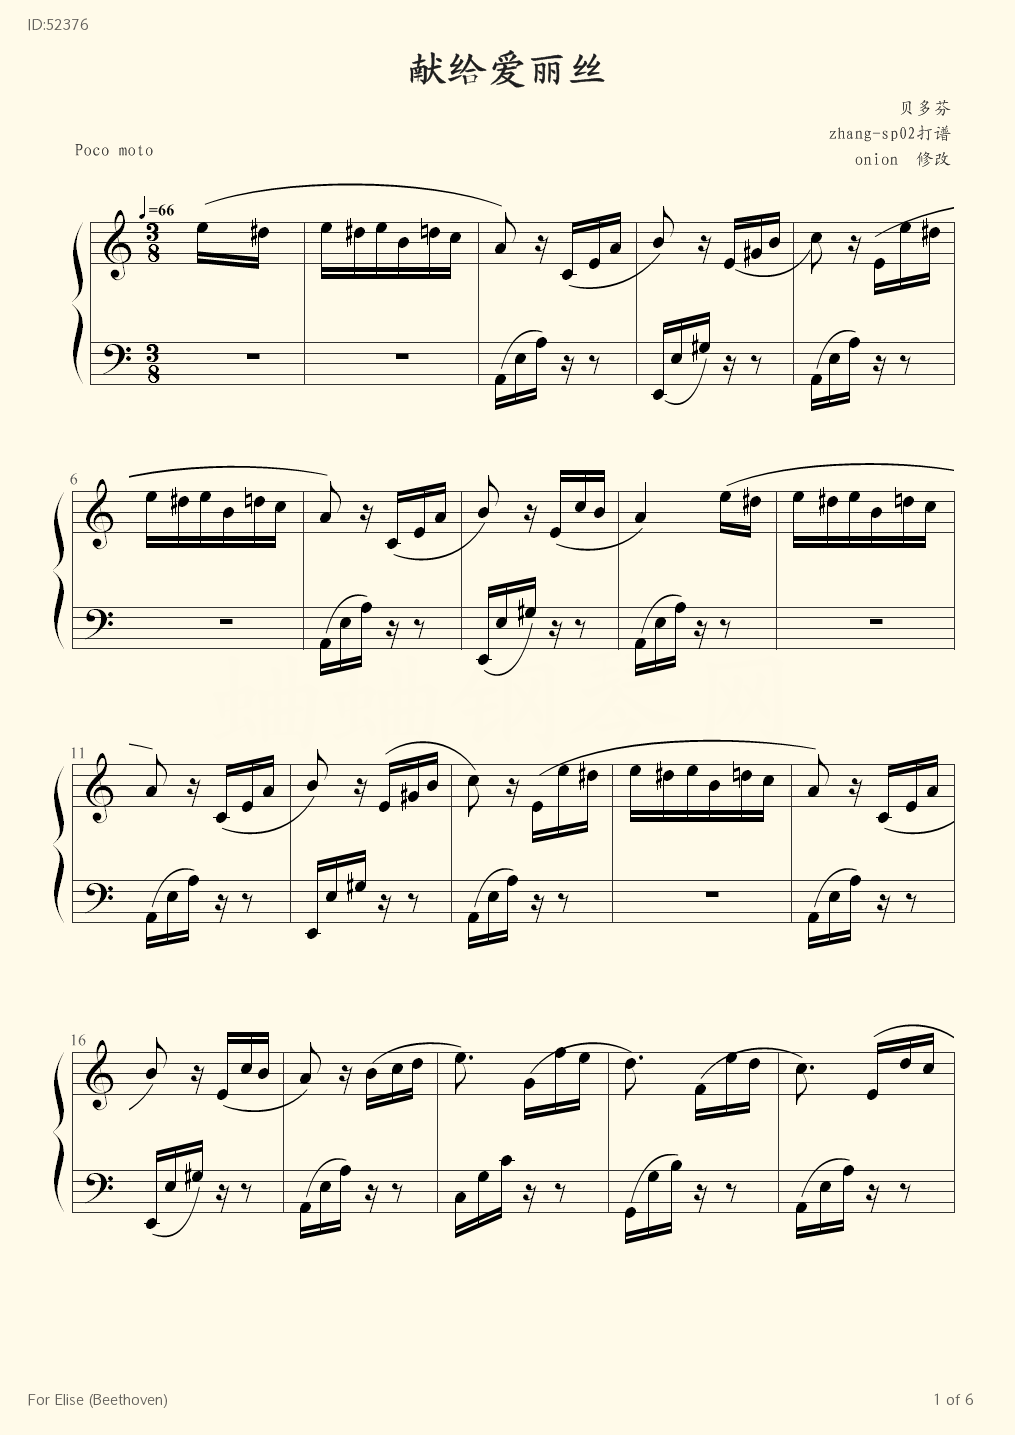 For Elise Beethoven - Ludwig van Beethoven - first page